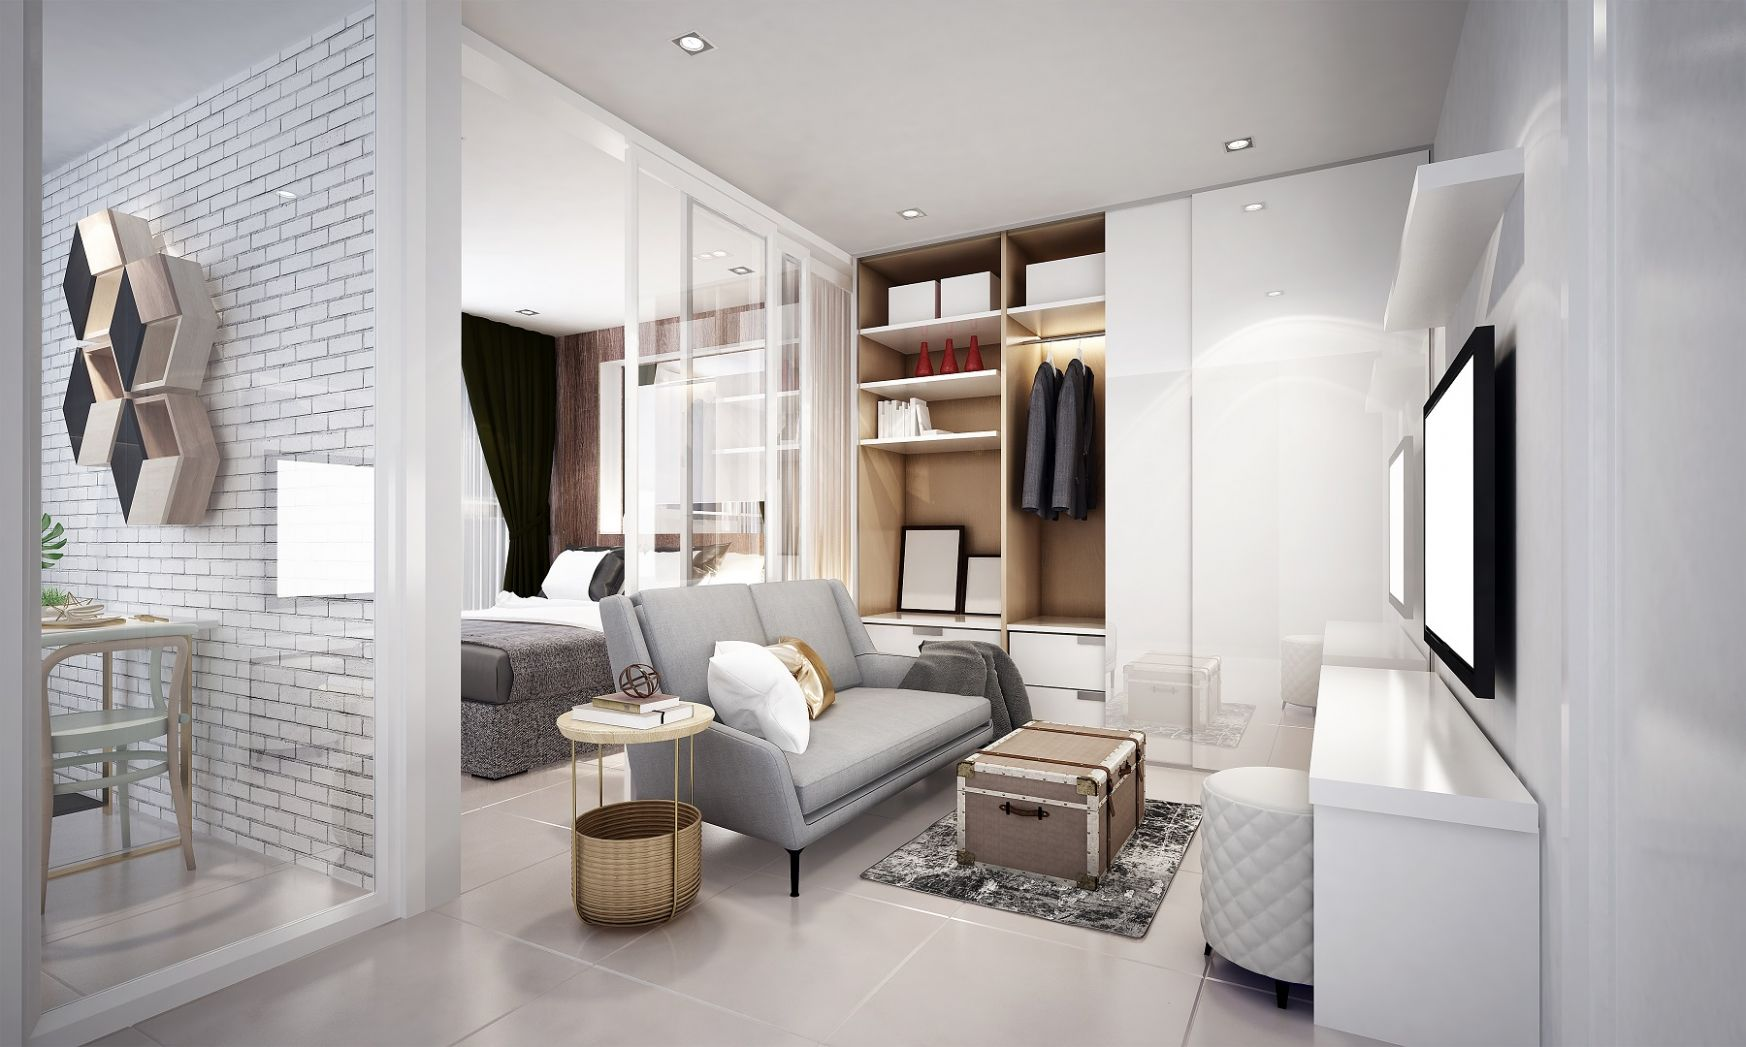 10 Stylish Design Ideas For Your Studio Flat | The LuxPad